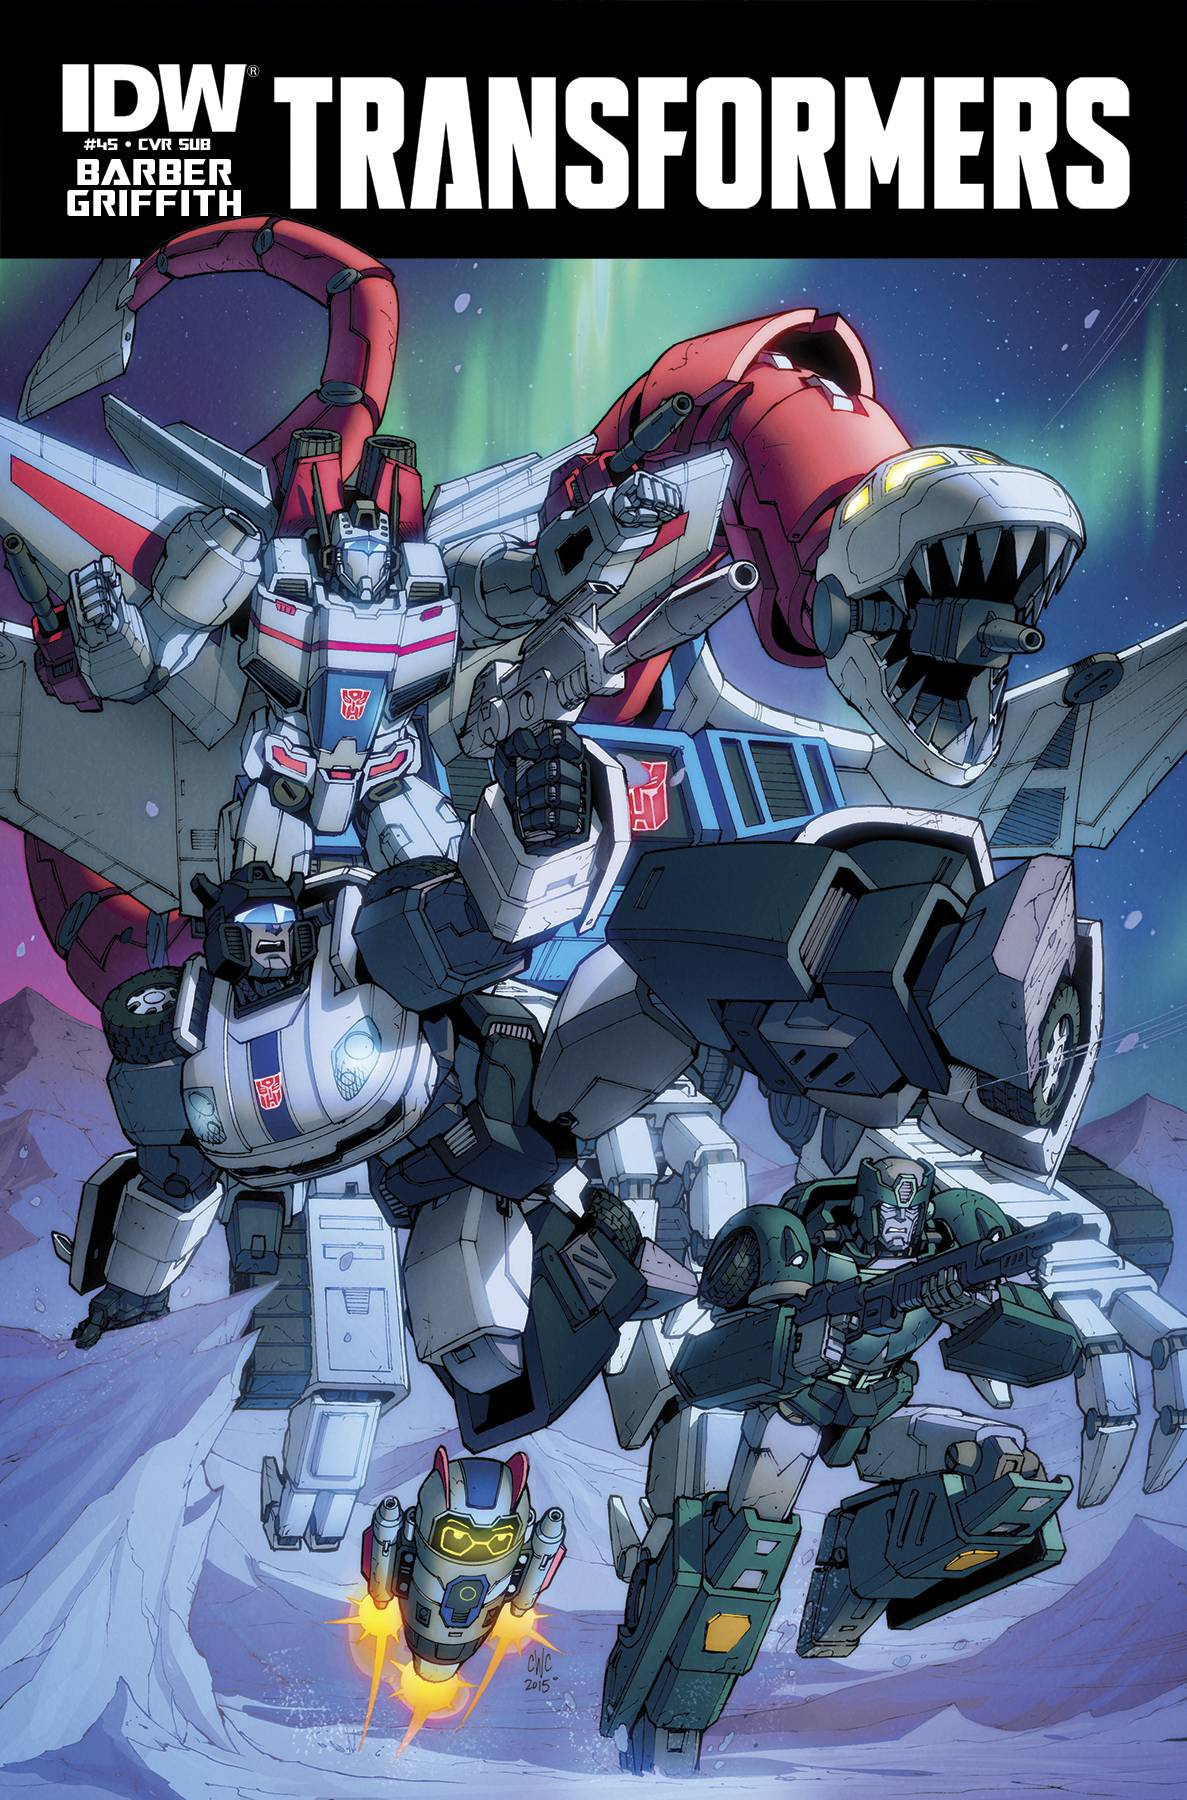 IDW Transformers Comics for September 2015 - Transformers ...